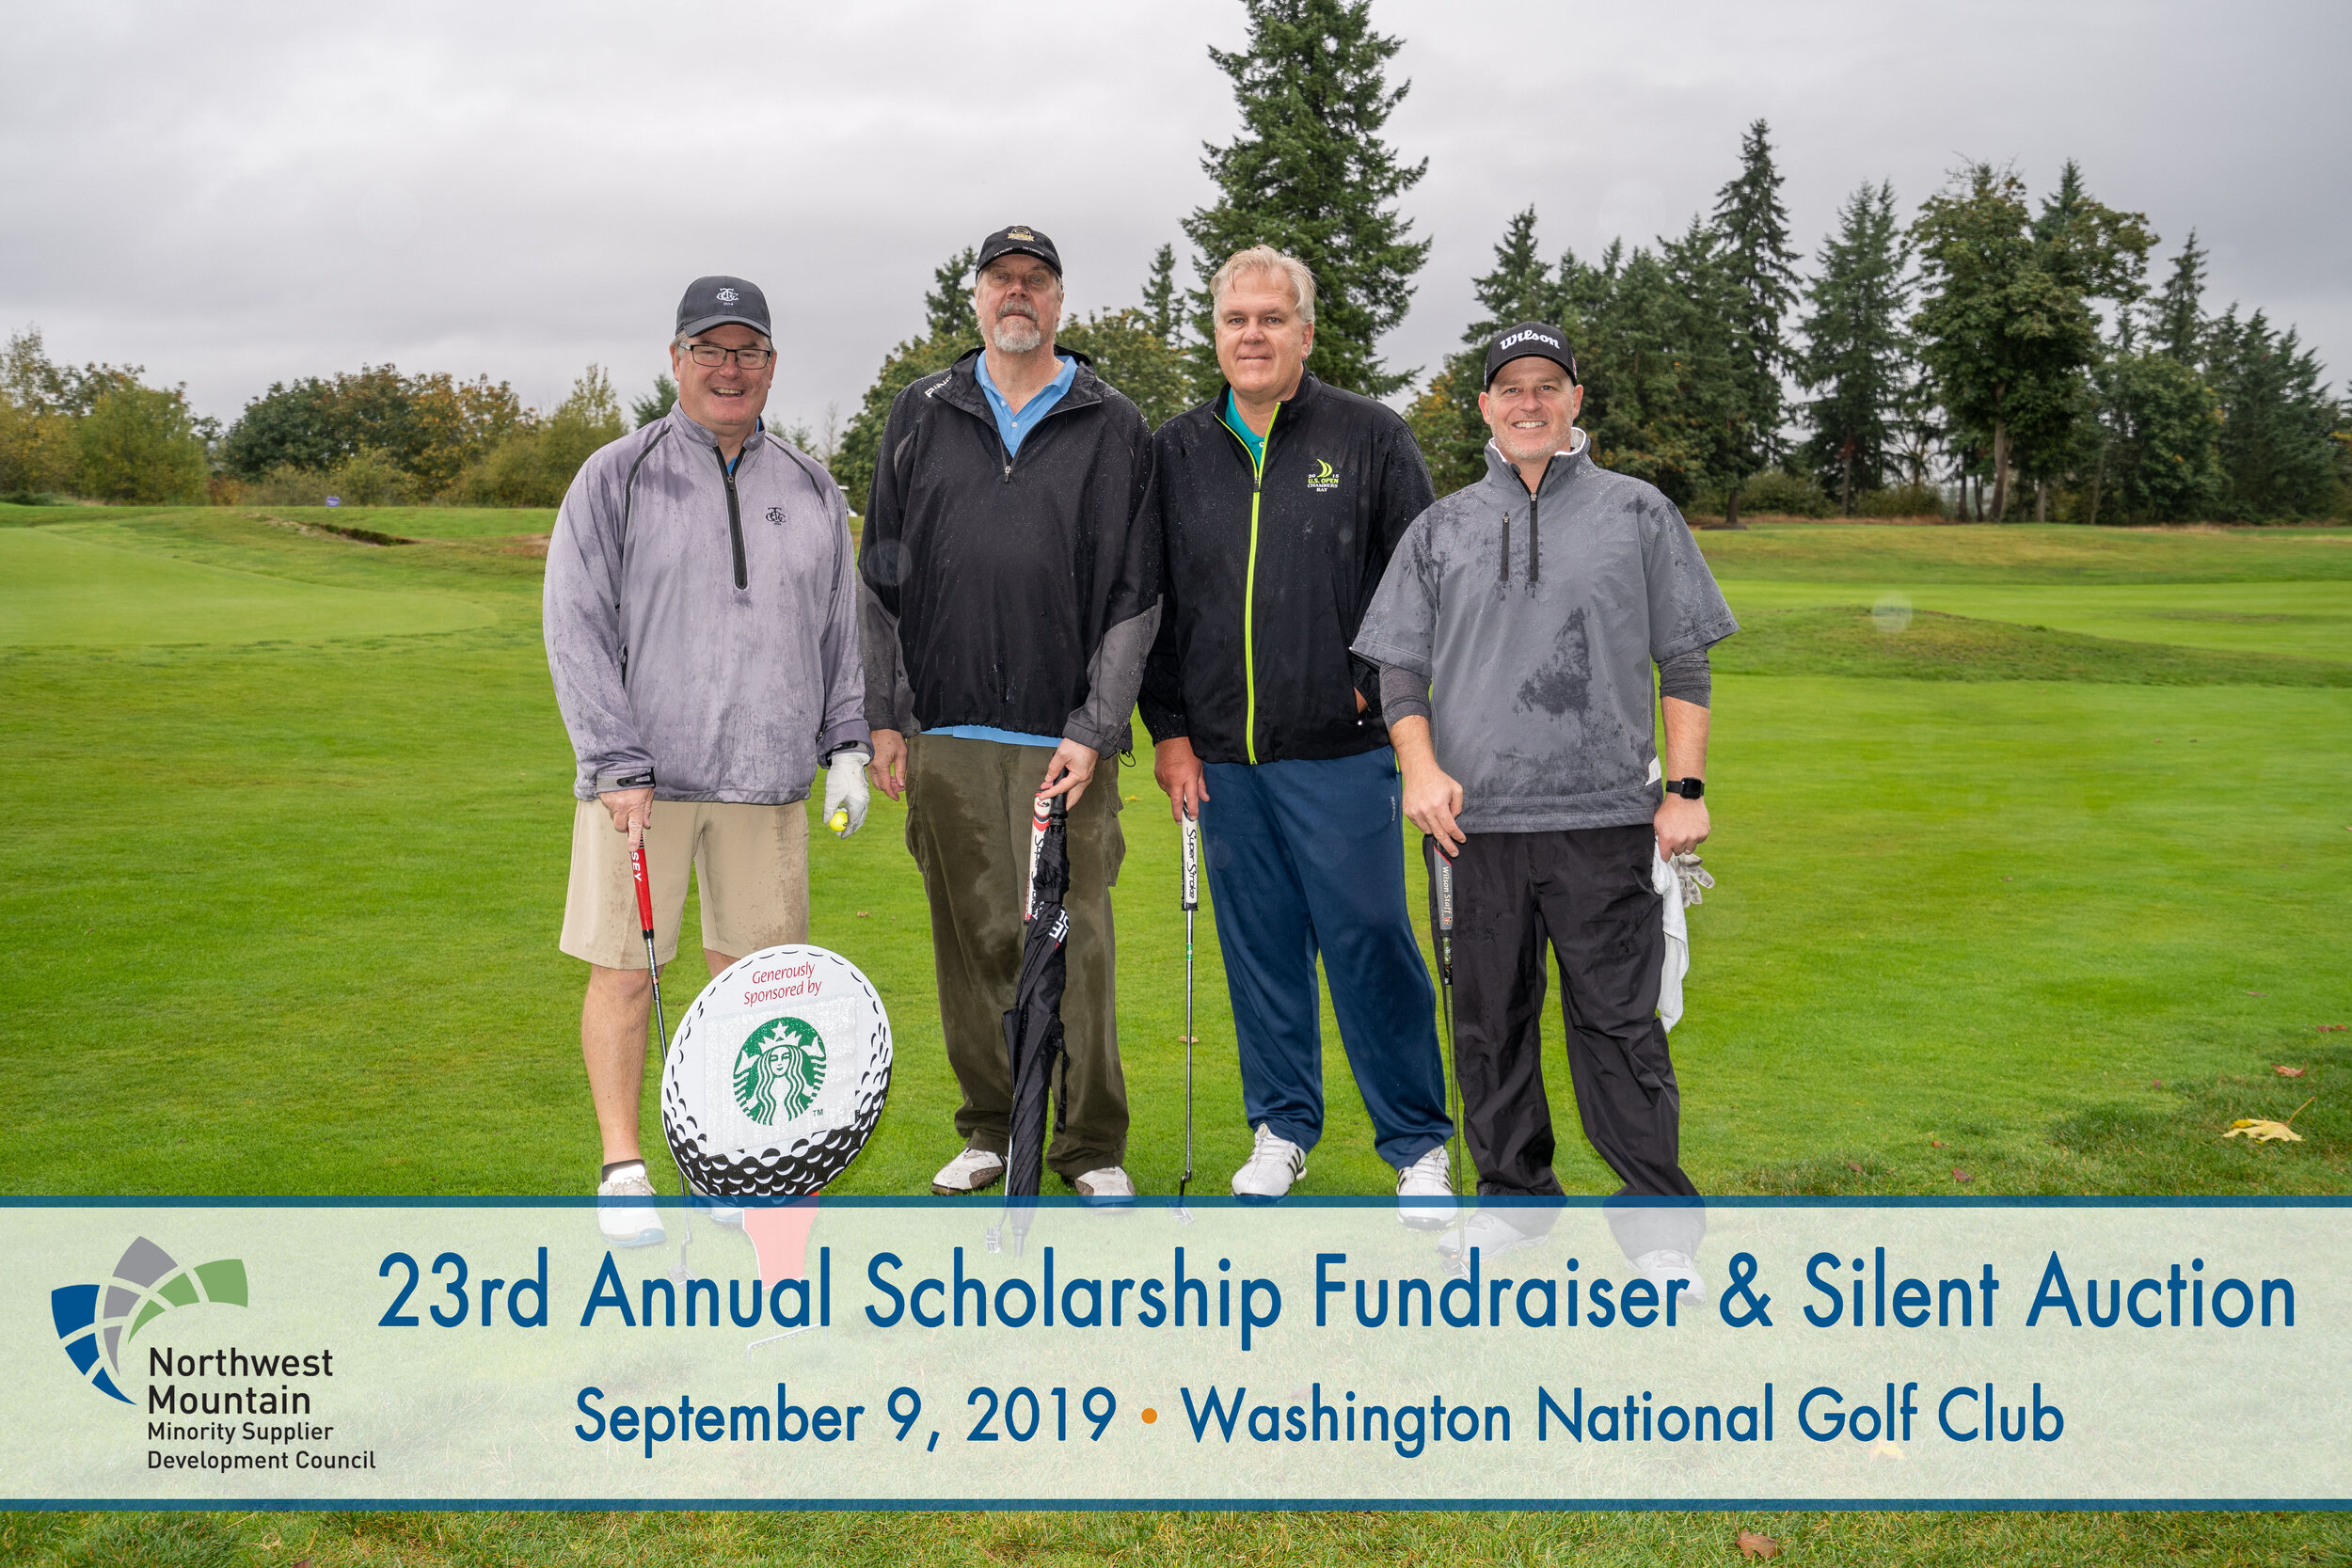 Trio braved the rainy weather to support Minority Business Enterprises at the NWMMSDC scholarship fundraiser and silent auction.